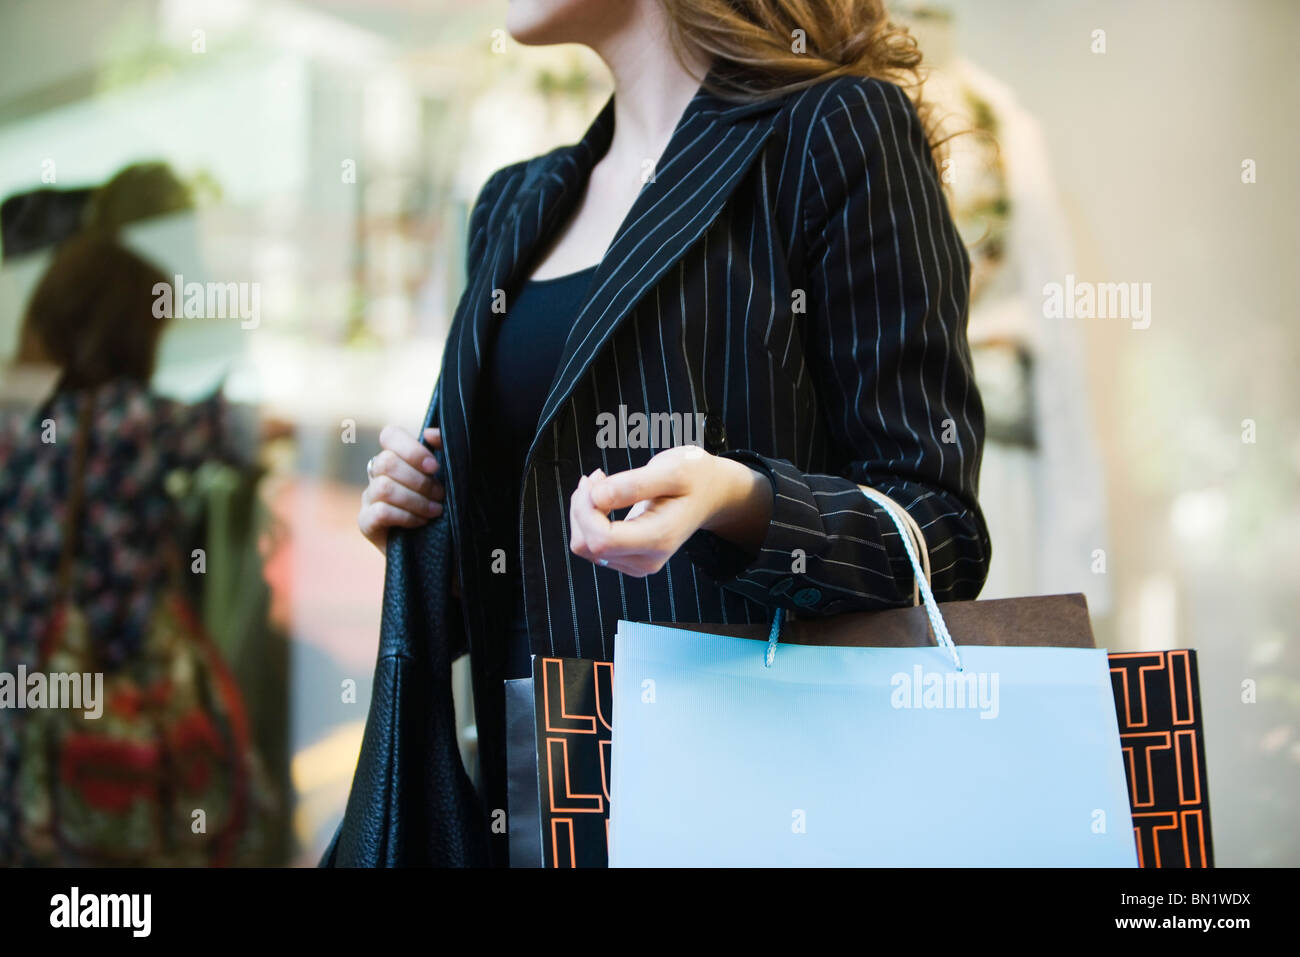 Woman carrying shopping bags, cropped - Stock Image